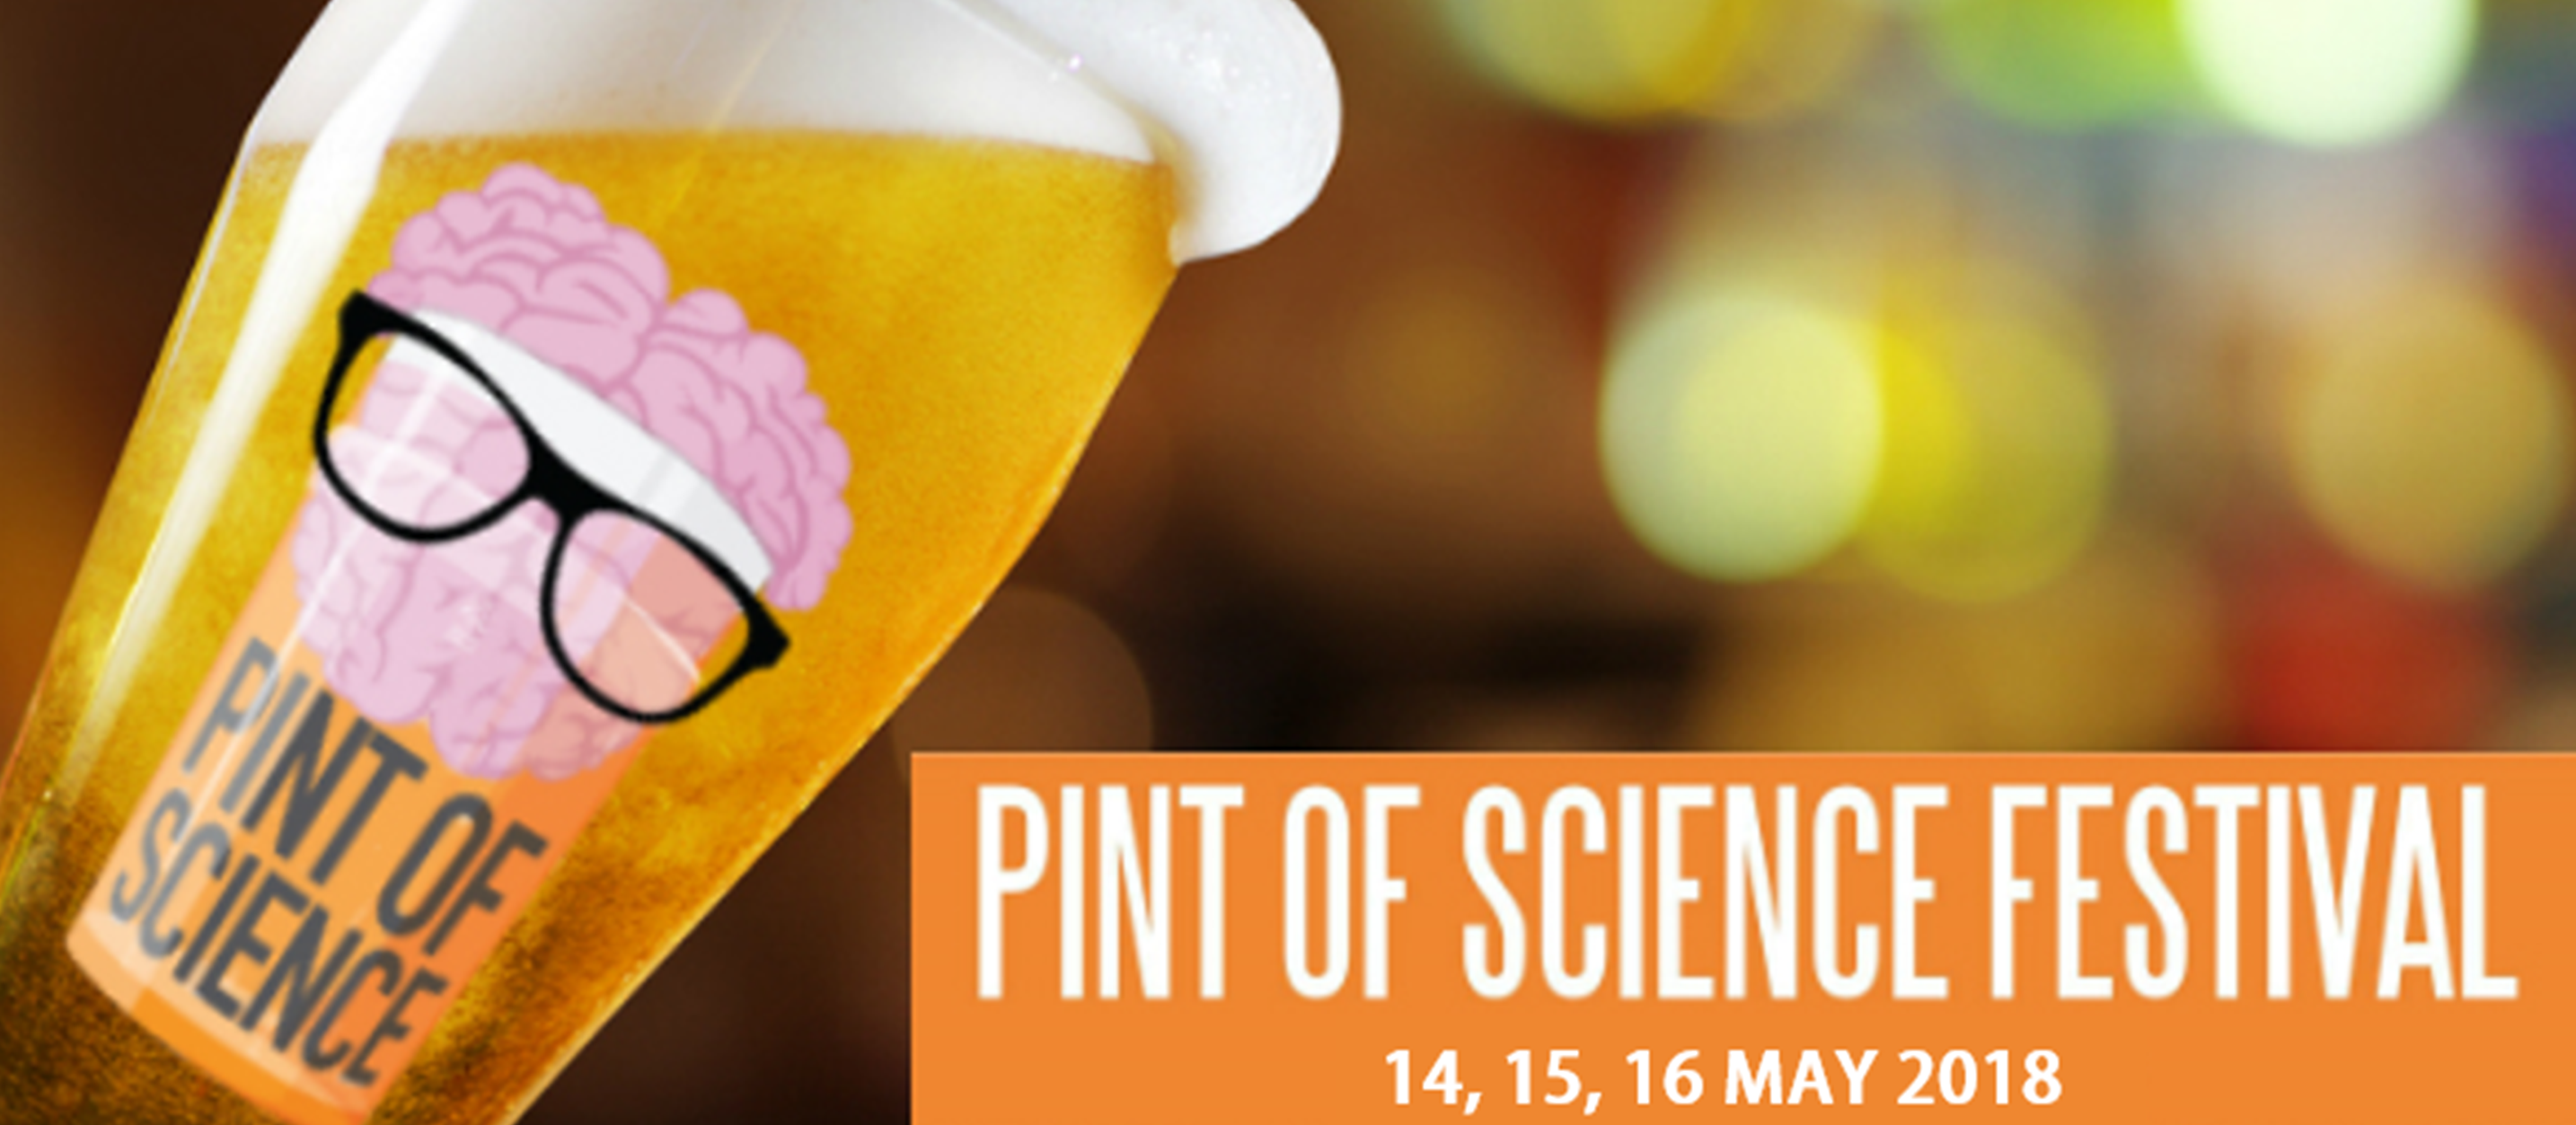 Pint of Science 2018 - Lyon (photo : Laura-Riggall)